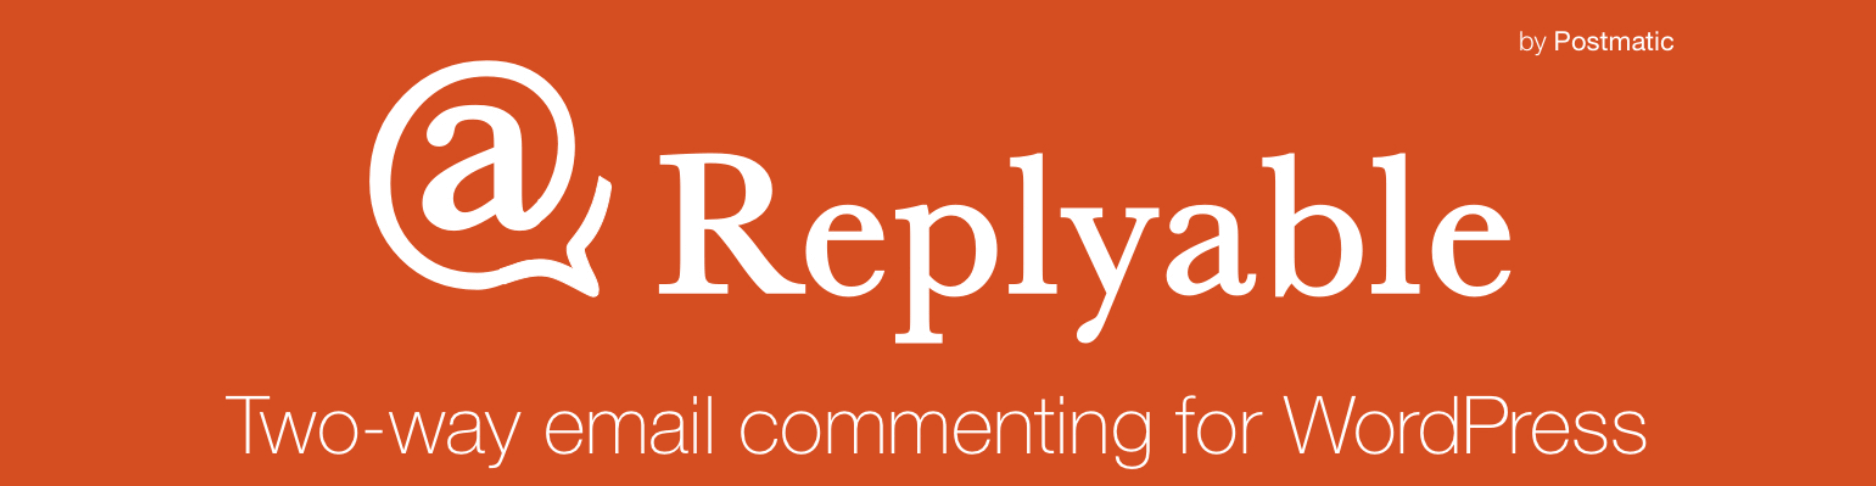 Replyable wp plugin